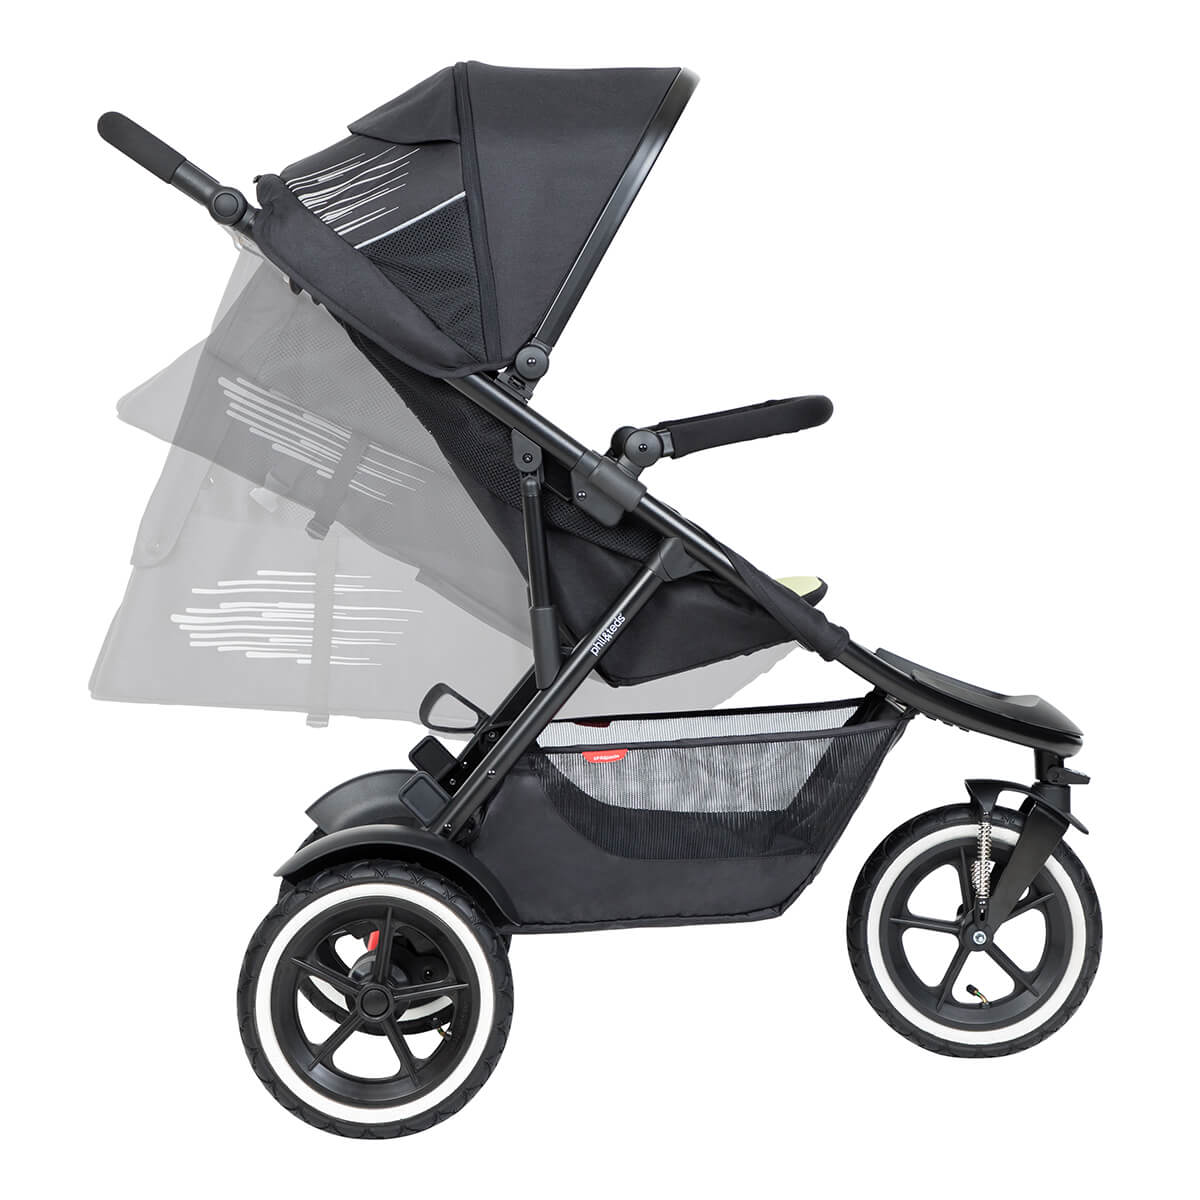 https://cdn.accentuate.io/4509867081825/19793939267754/philteds-sport-buggy-can-recline-in-multiple-angles-including-full-recline-for-newborn-baby-v1626485284329.jpg?1200x1200